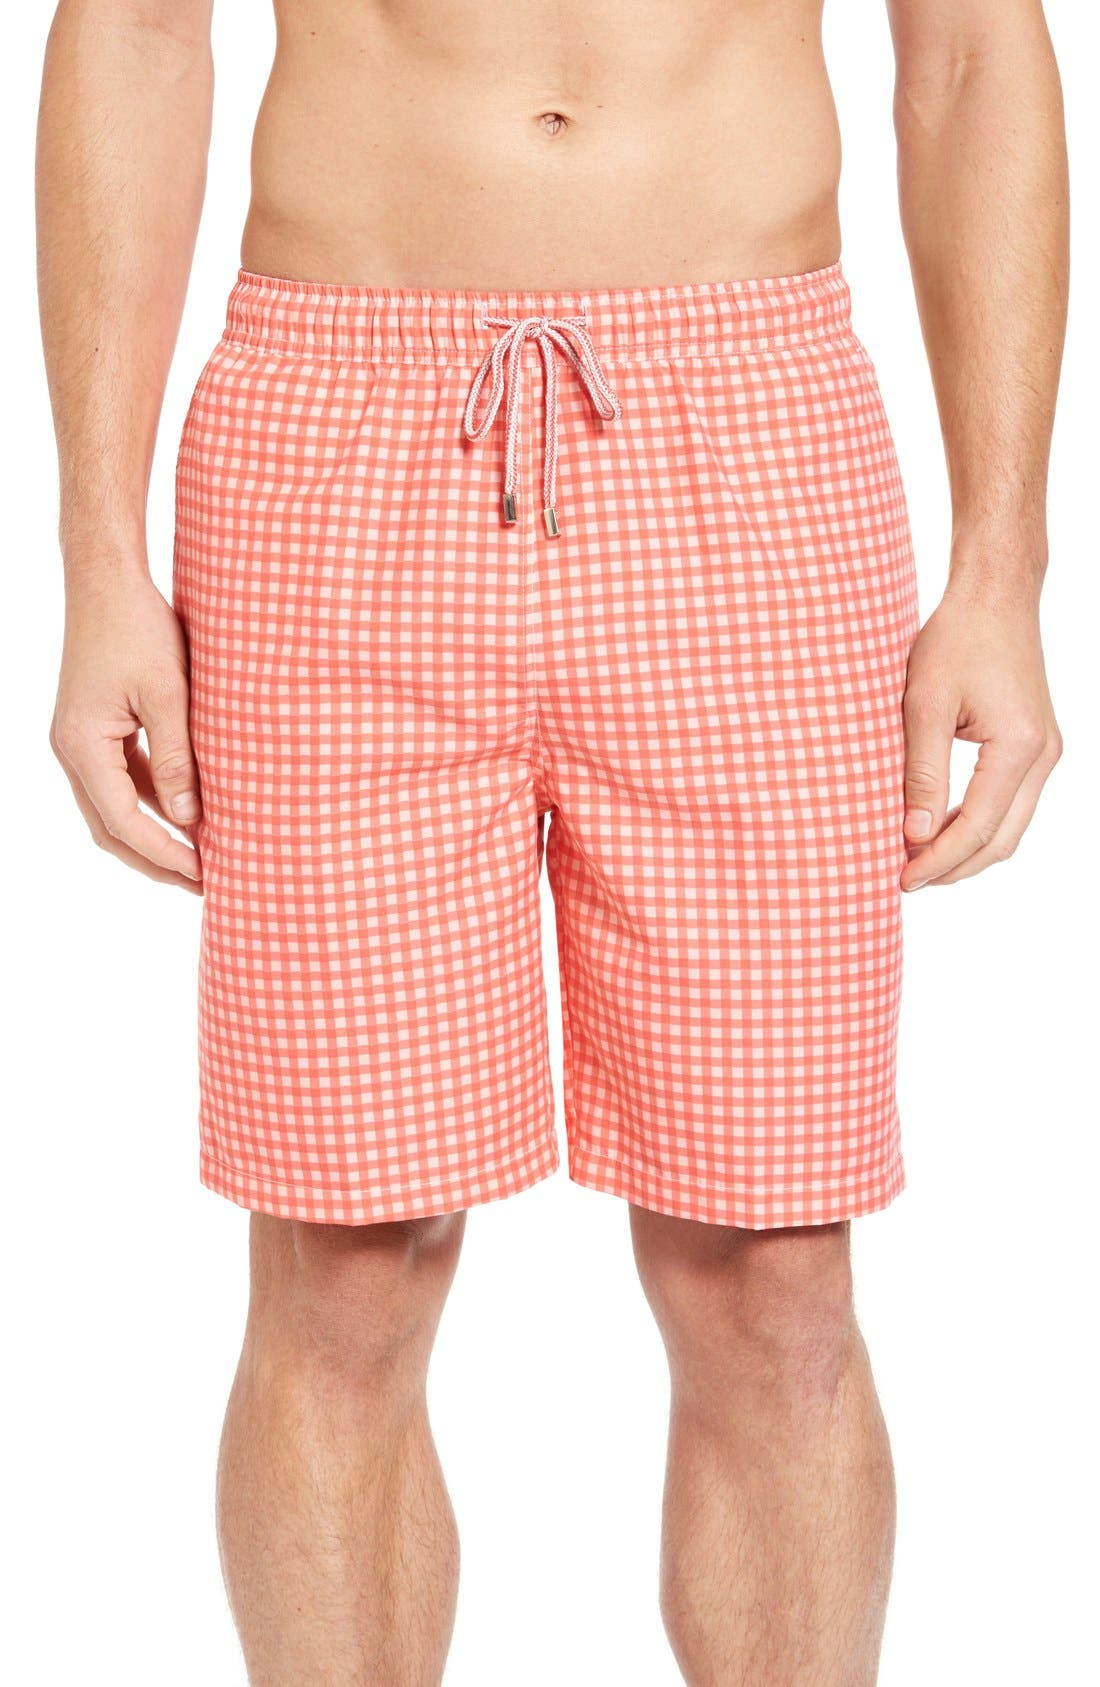 Alternate Image 1 Selected - Peter Millar Gingham Swim Trunks